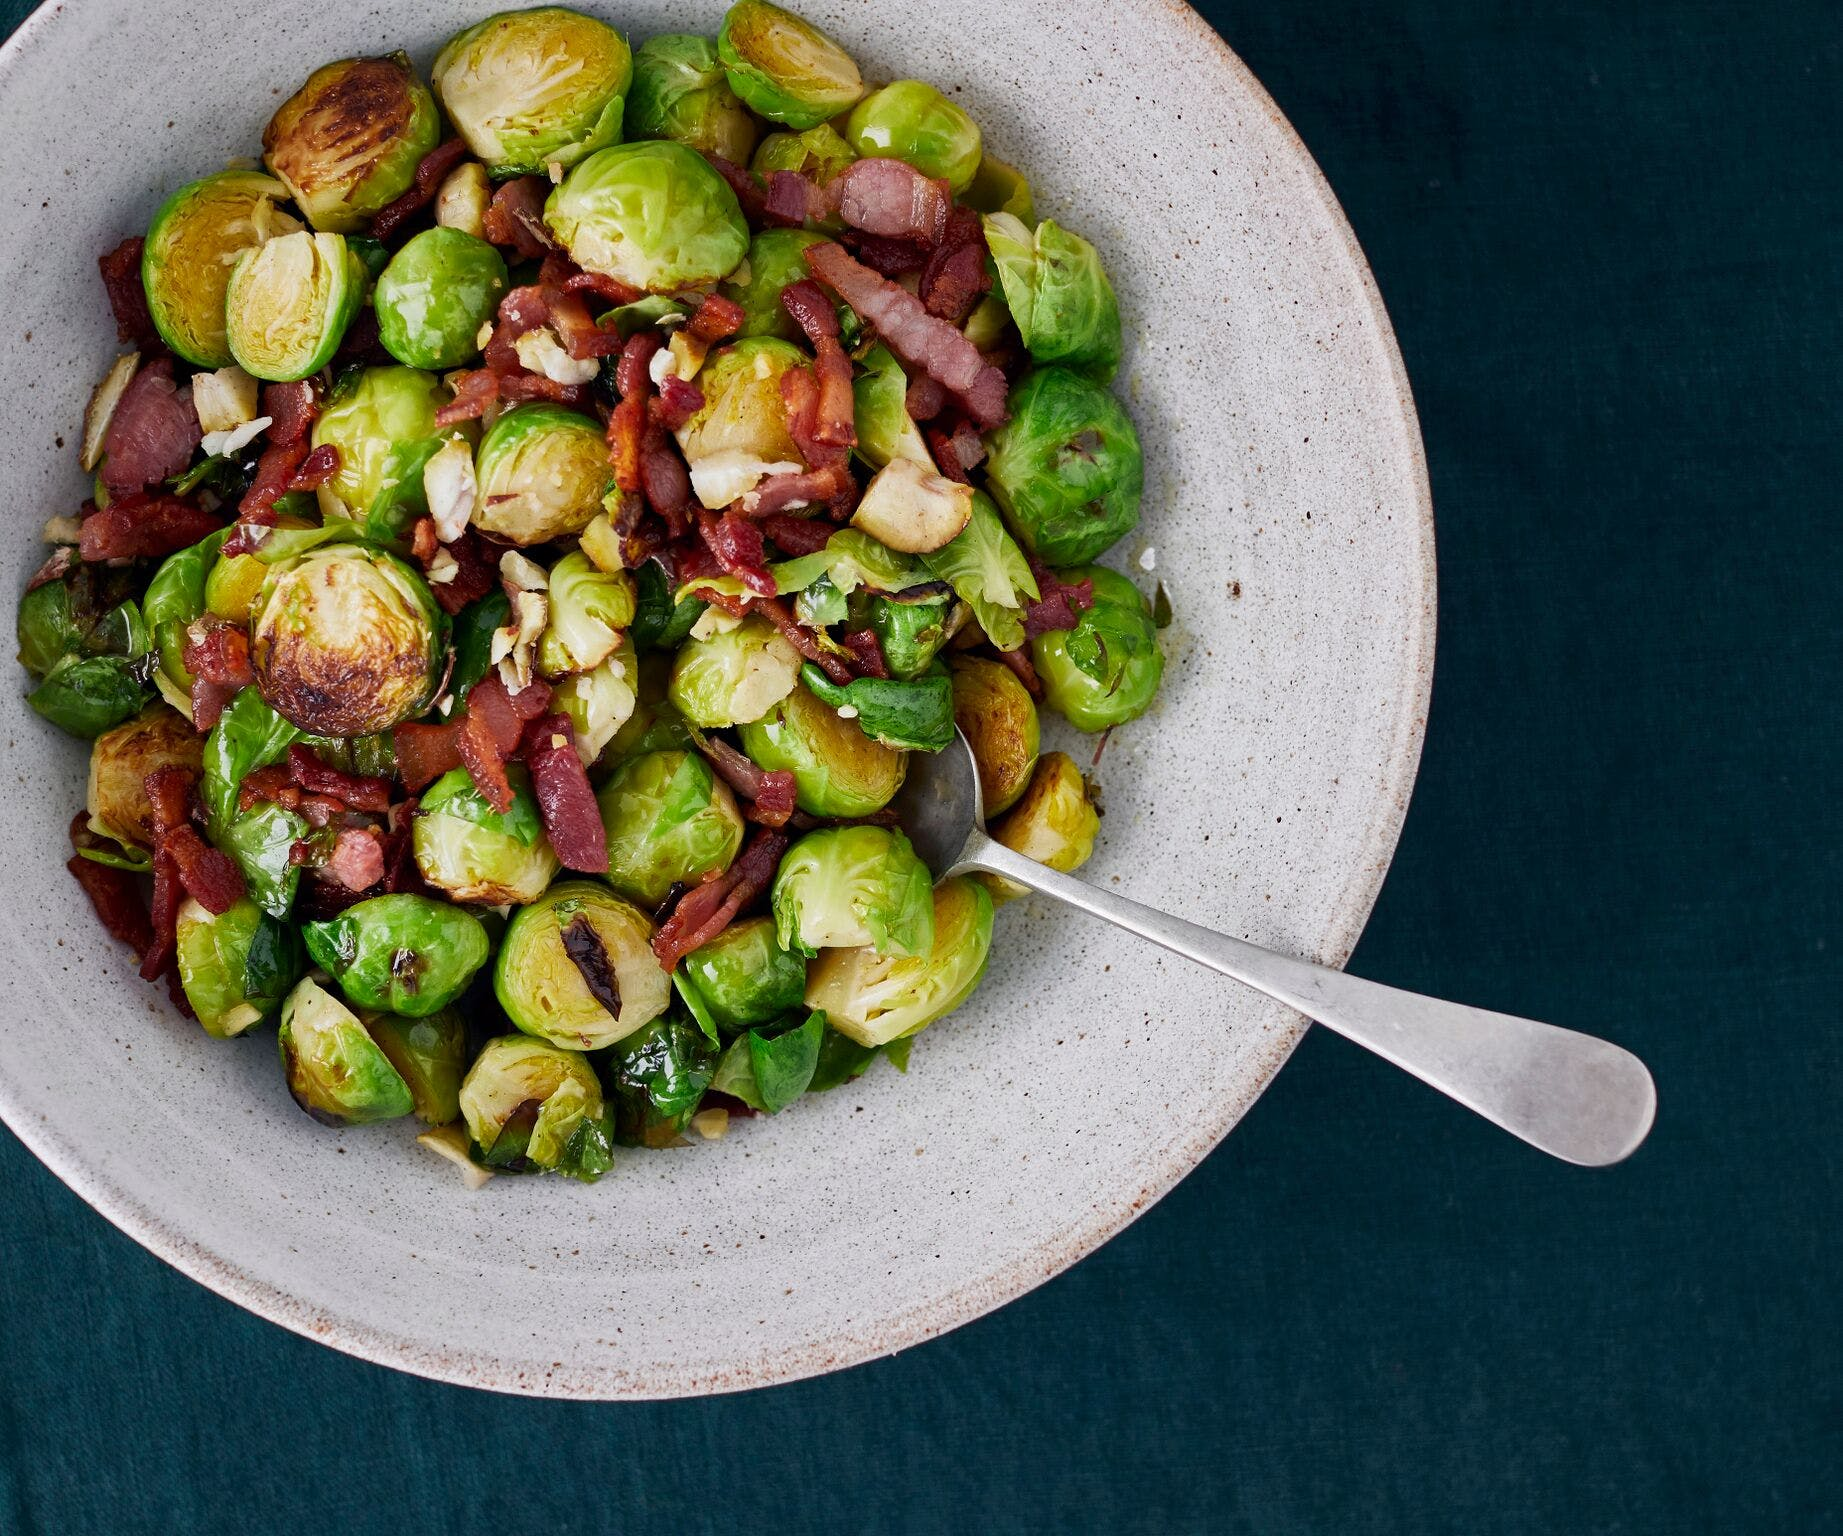 Pan-Fried Brussel Sprouts with Bacon and Chestnuts